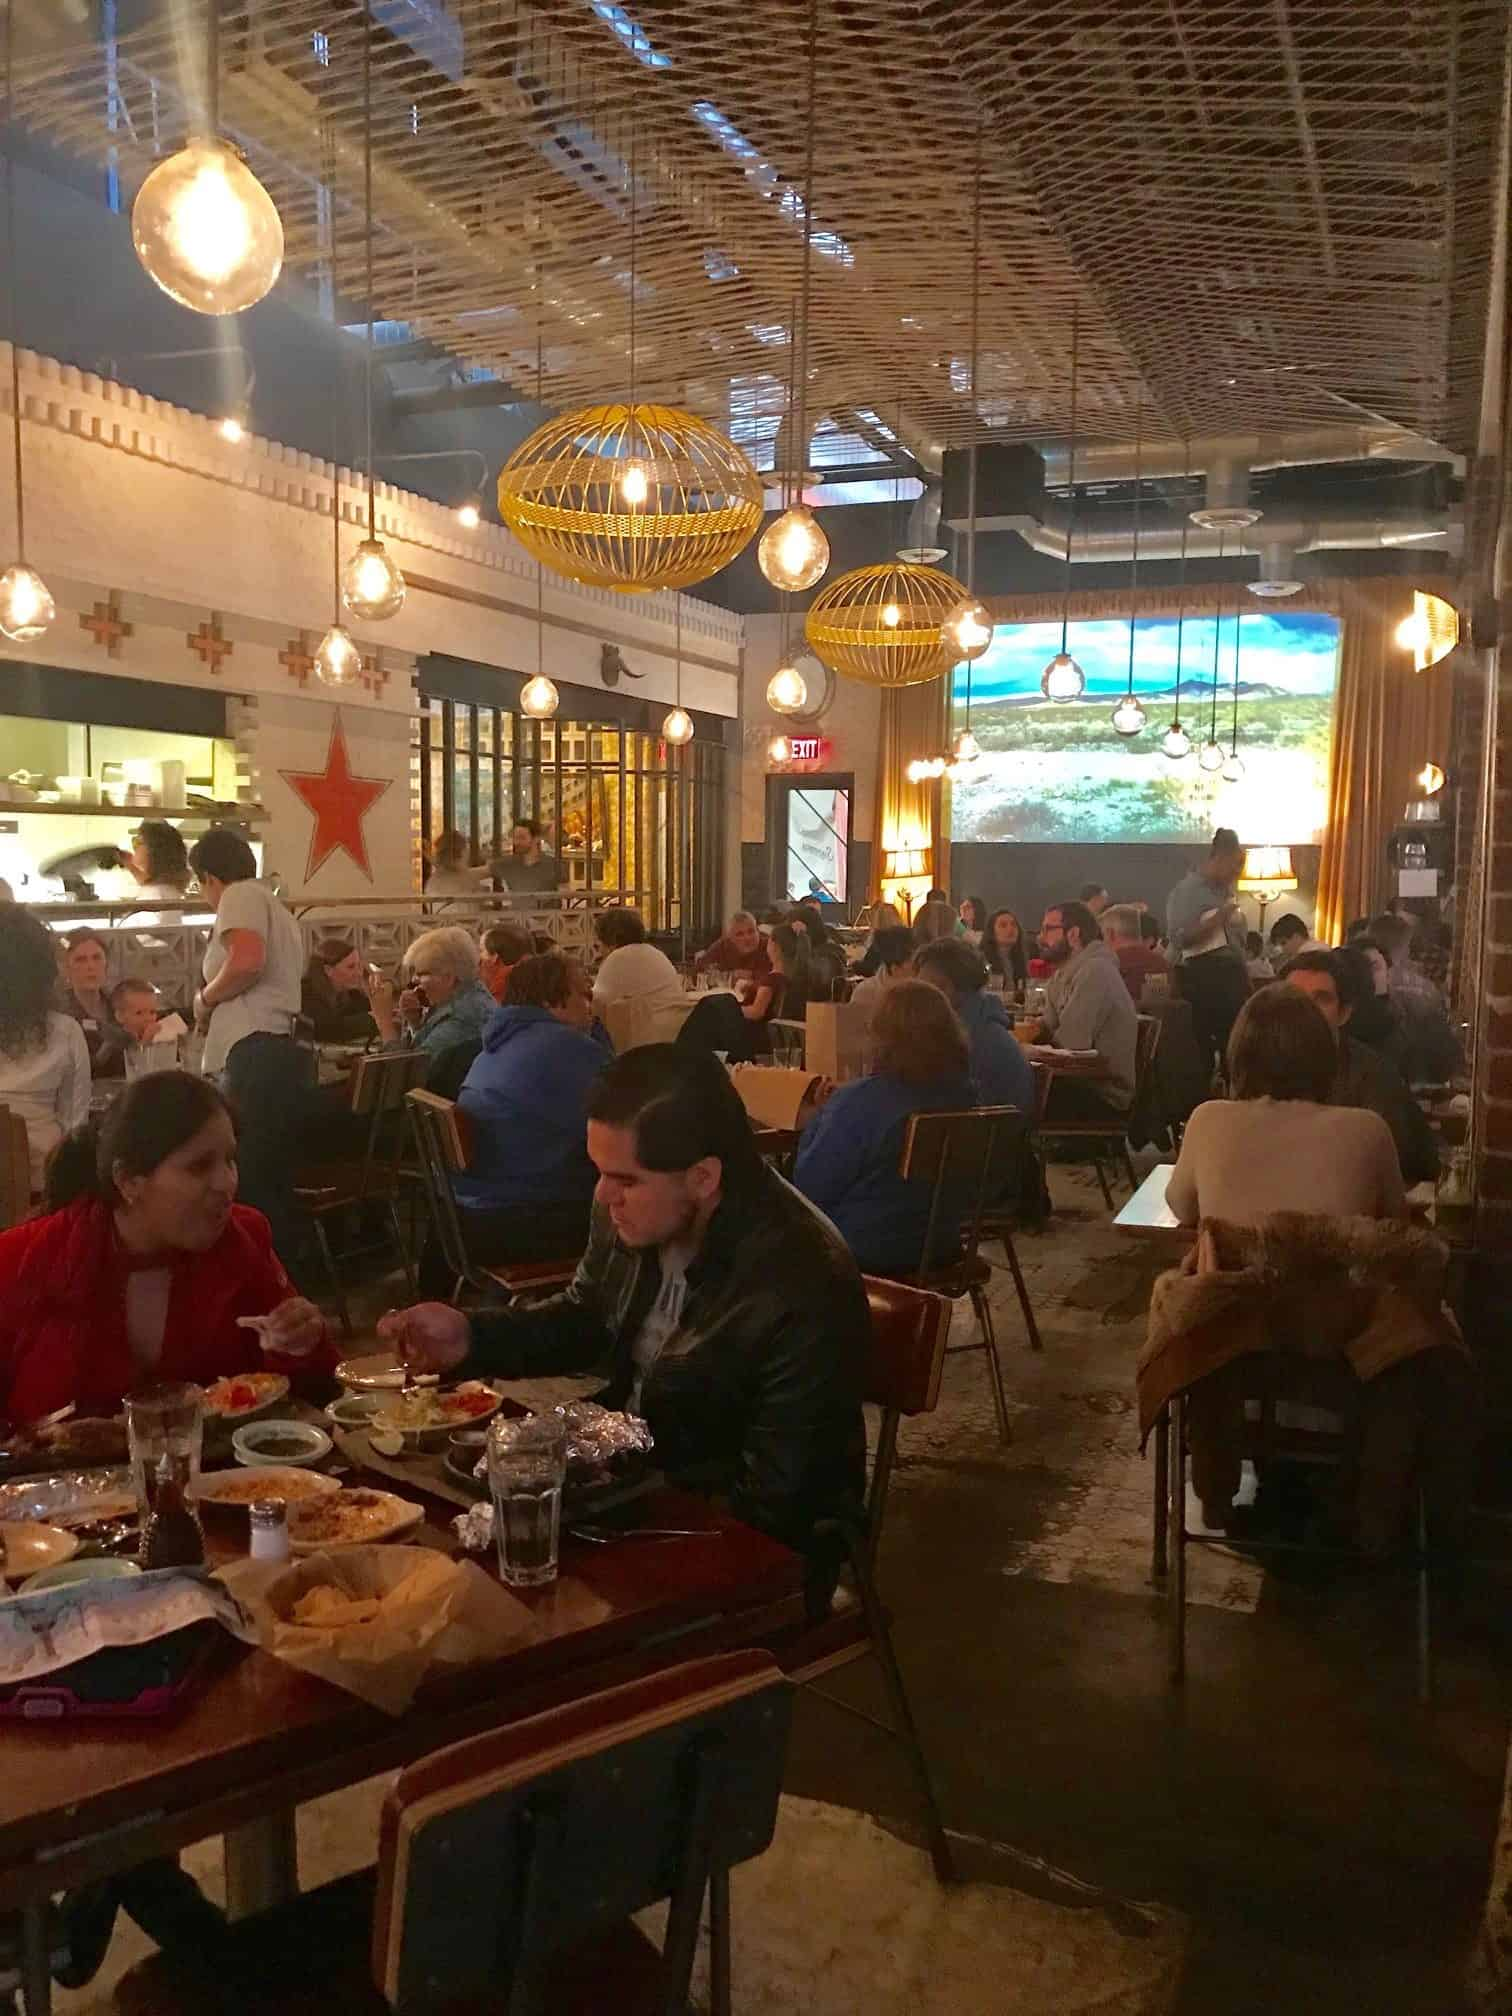 Atlanta's Best Family-Friendly Restaurants: Superica #AtlantaRestaurant #KidRestaurantAtlanta #AtlantaTravel #FamilyTravelAtlanta #FamilyTravel